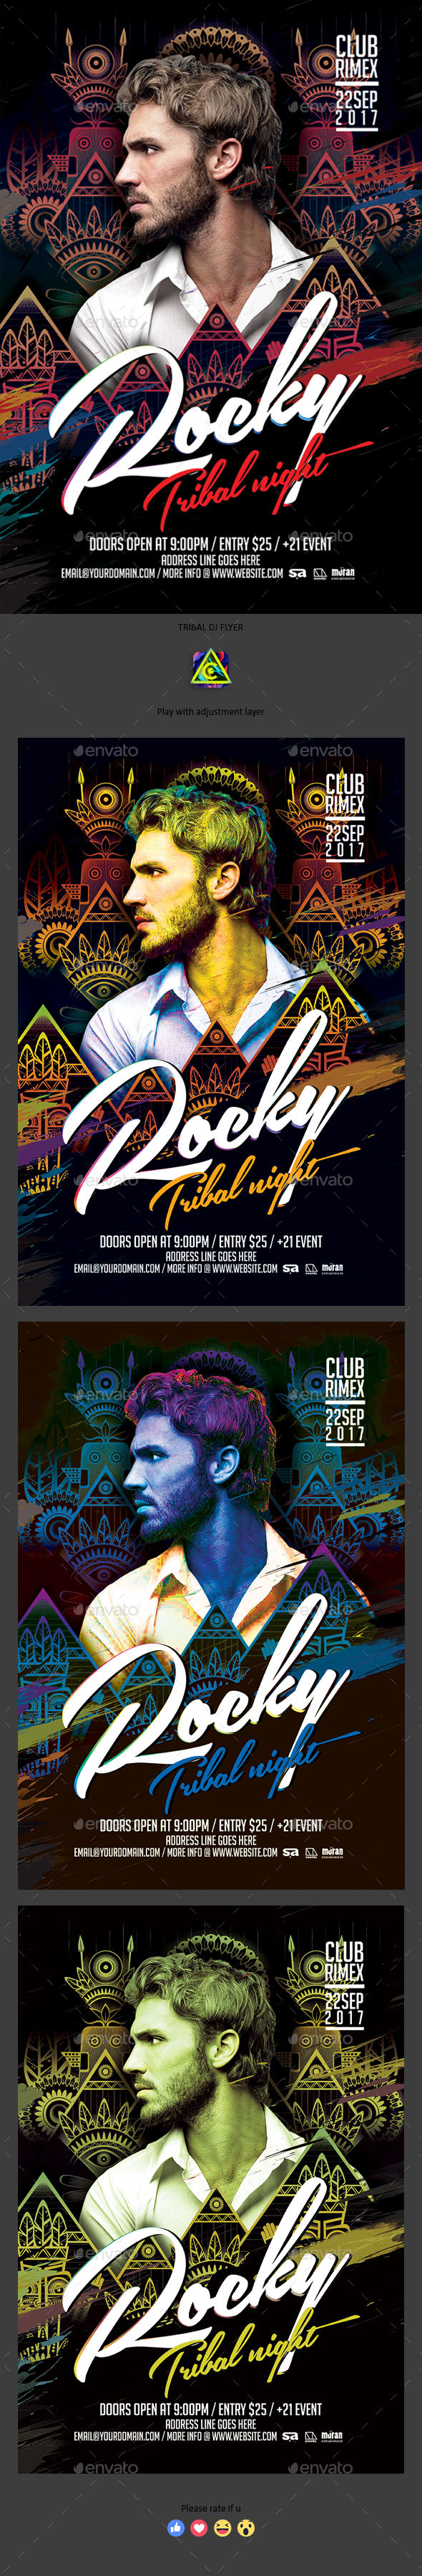 Tribal Night Guest Dj Flyer - Clubs & Parties Events